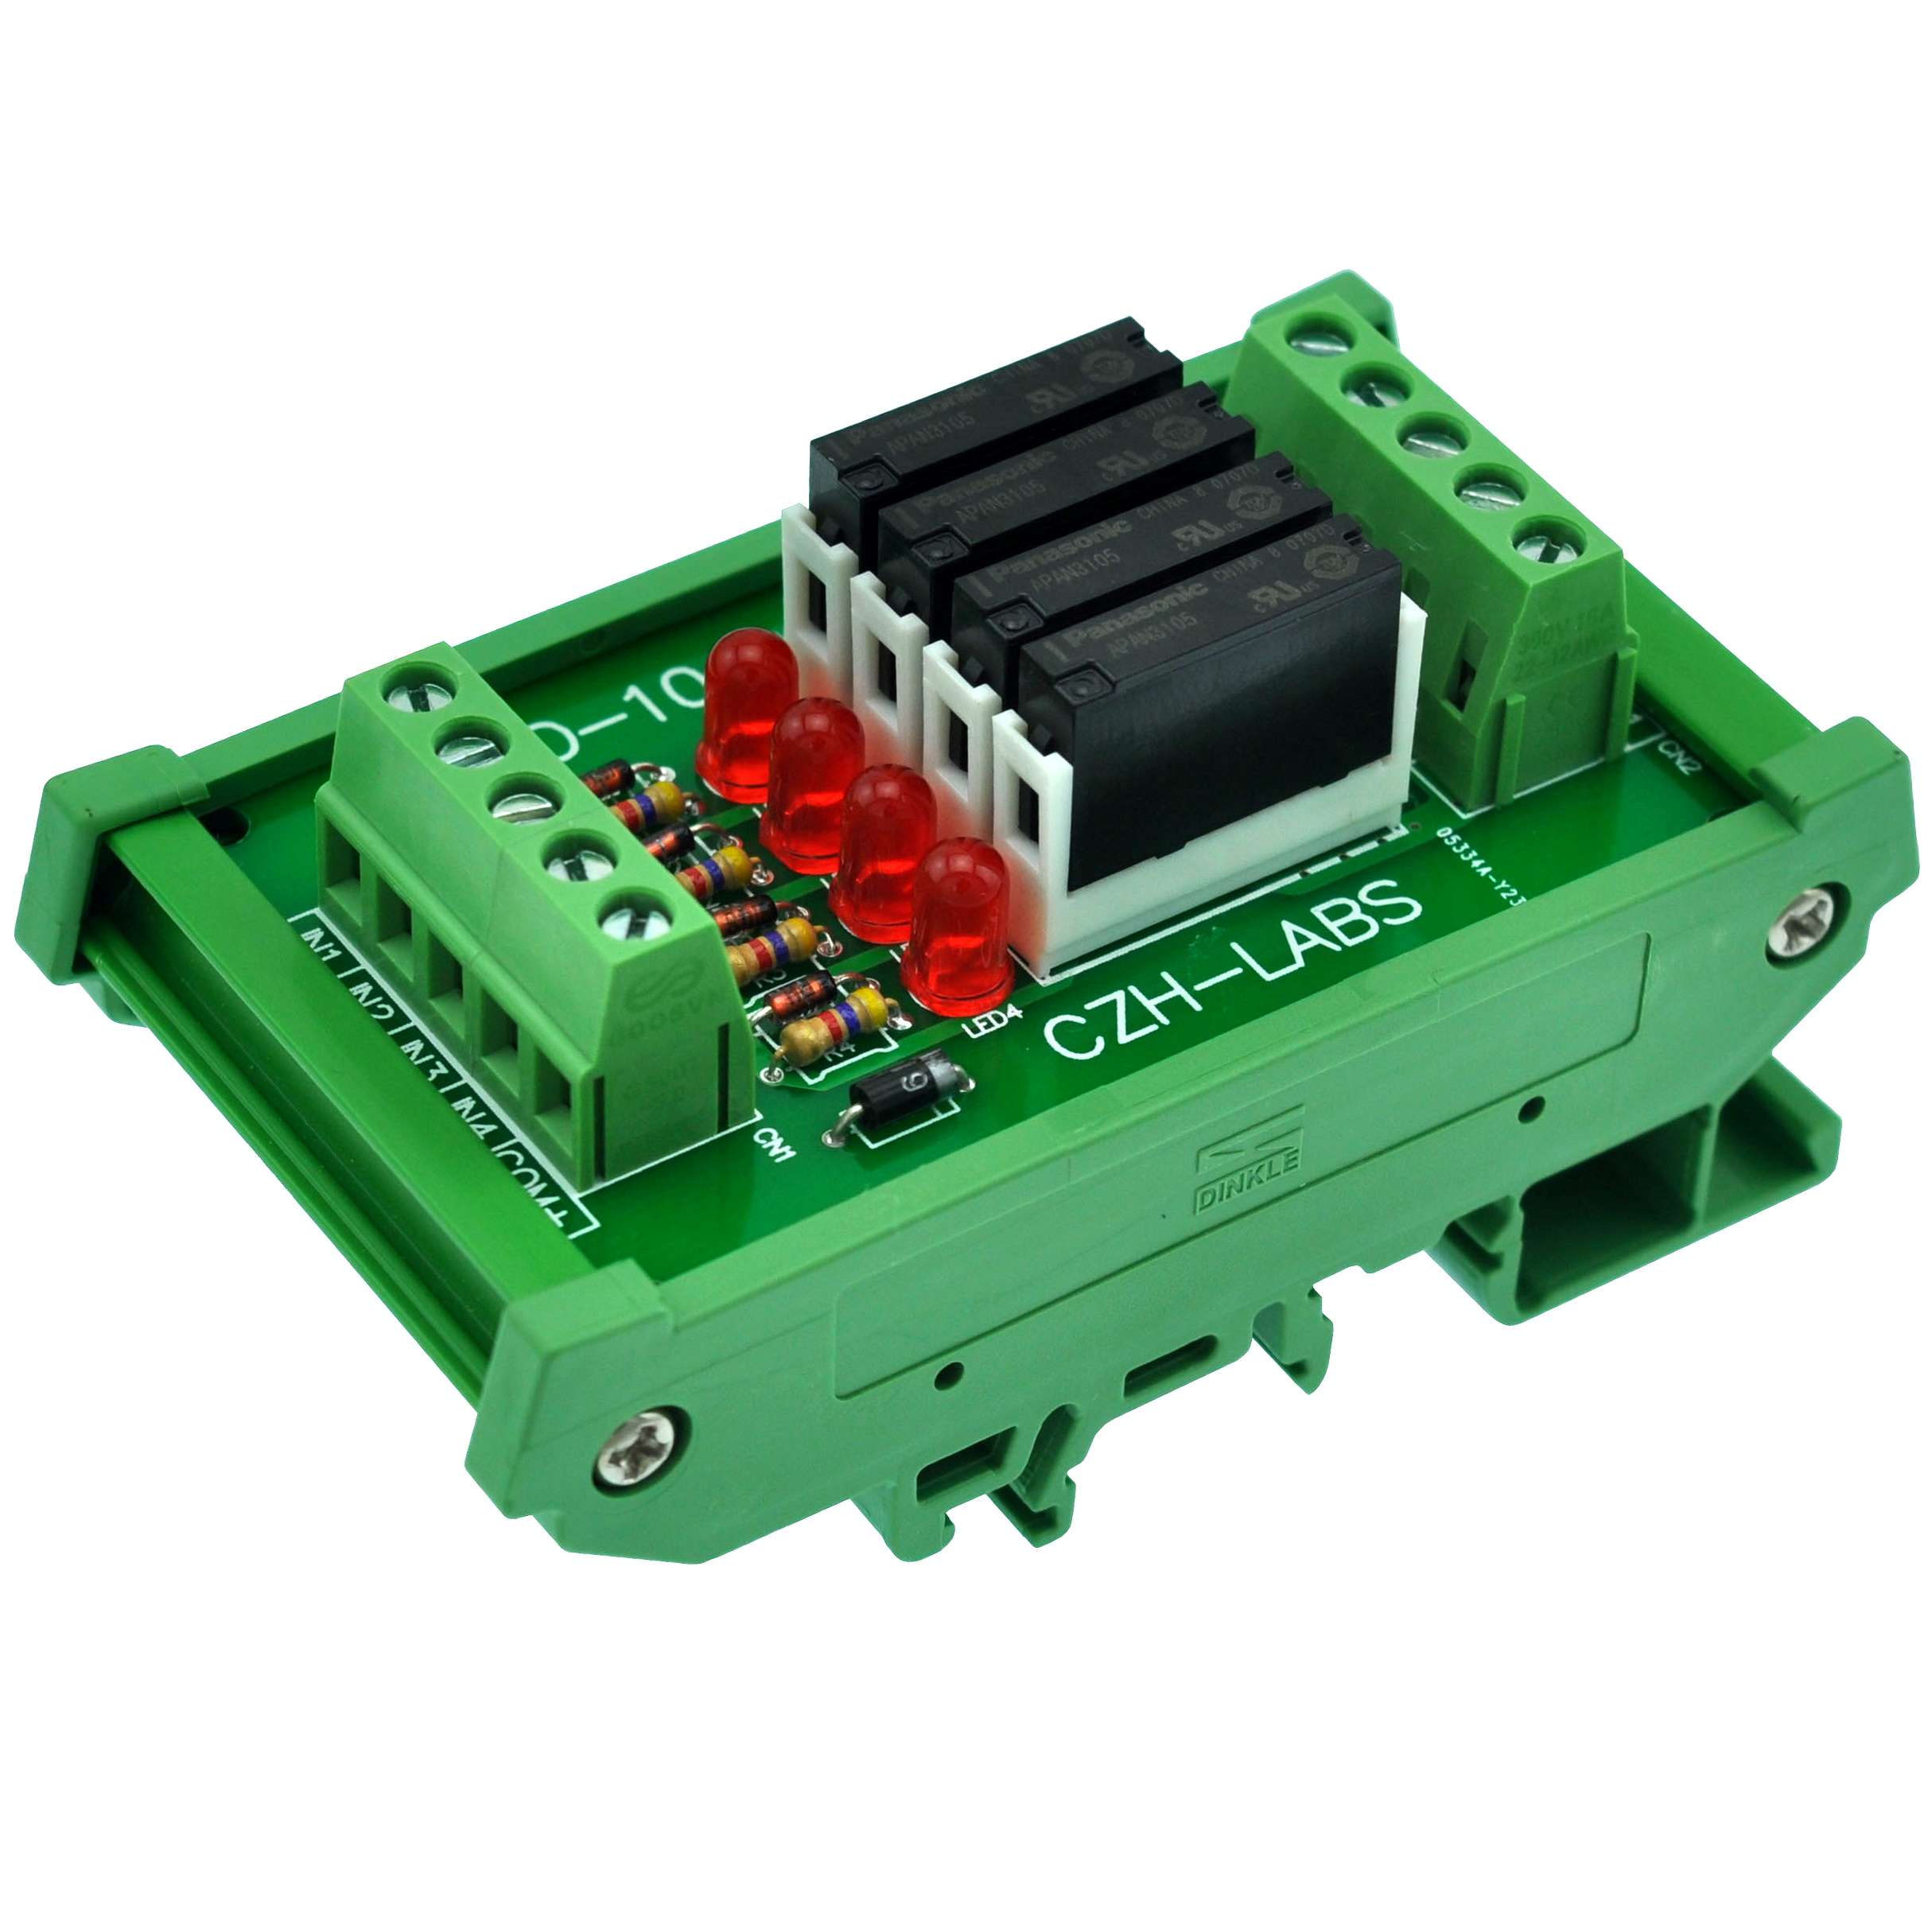 Slim DIN Rail Mount DC5V Sink/NPN 4 SPST-NO 5A Power Relay Module, APAN3105